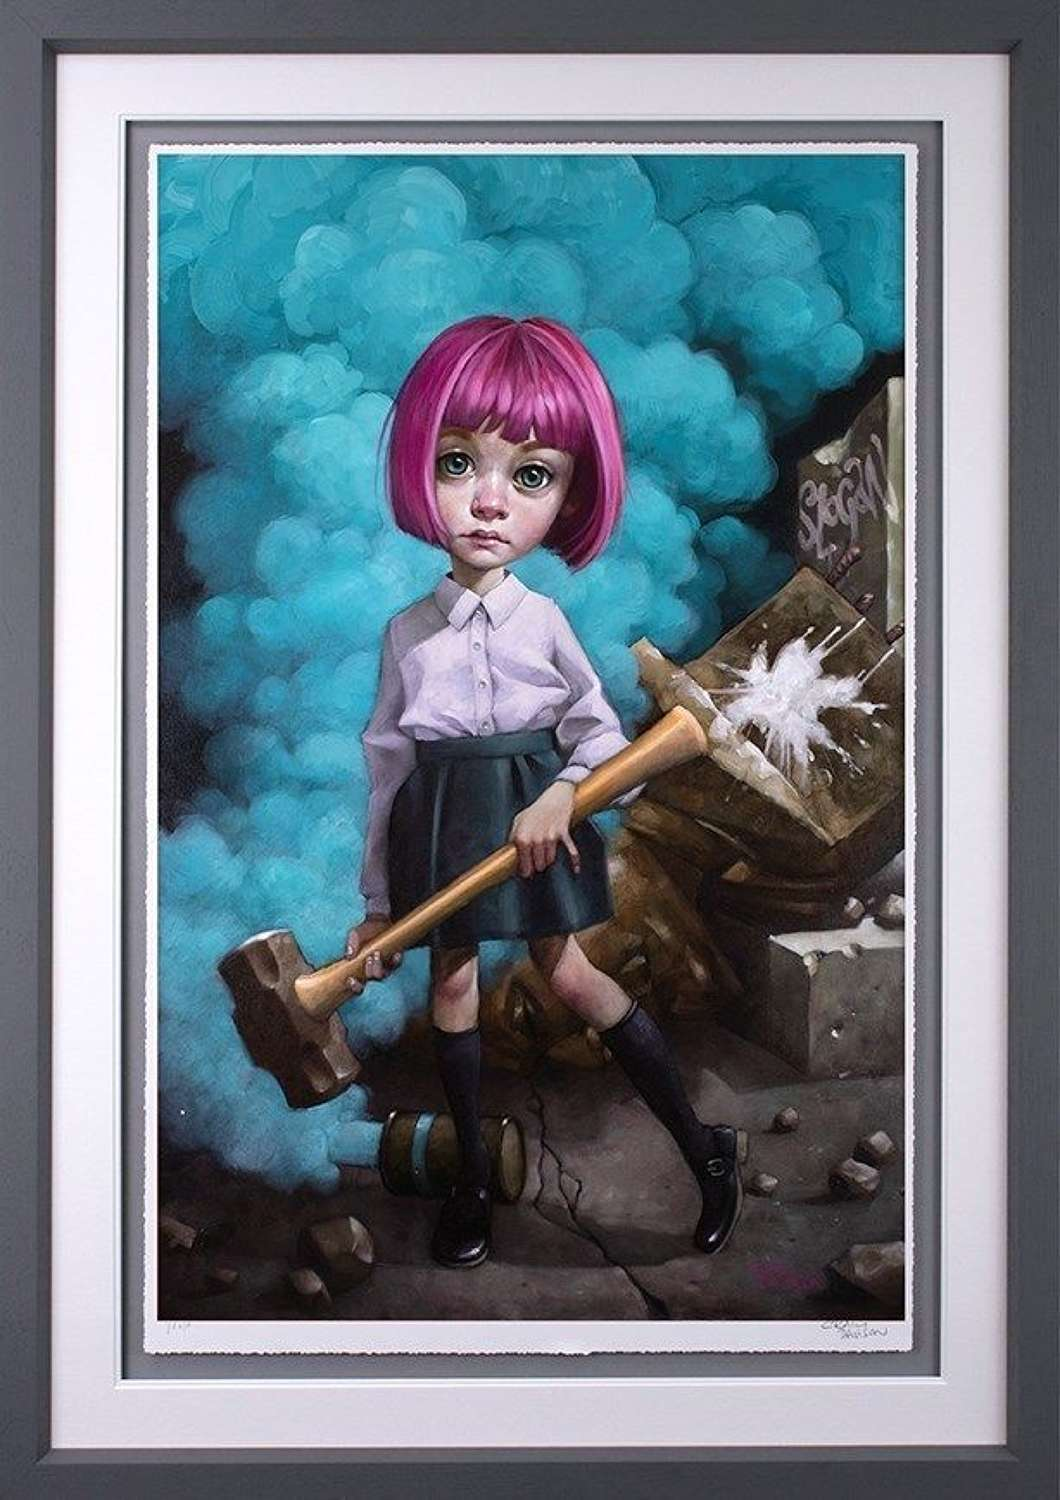 I Don't Know About Art, But I Know What I Like - by Craig Davison